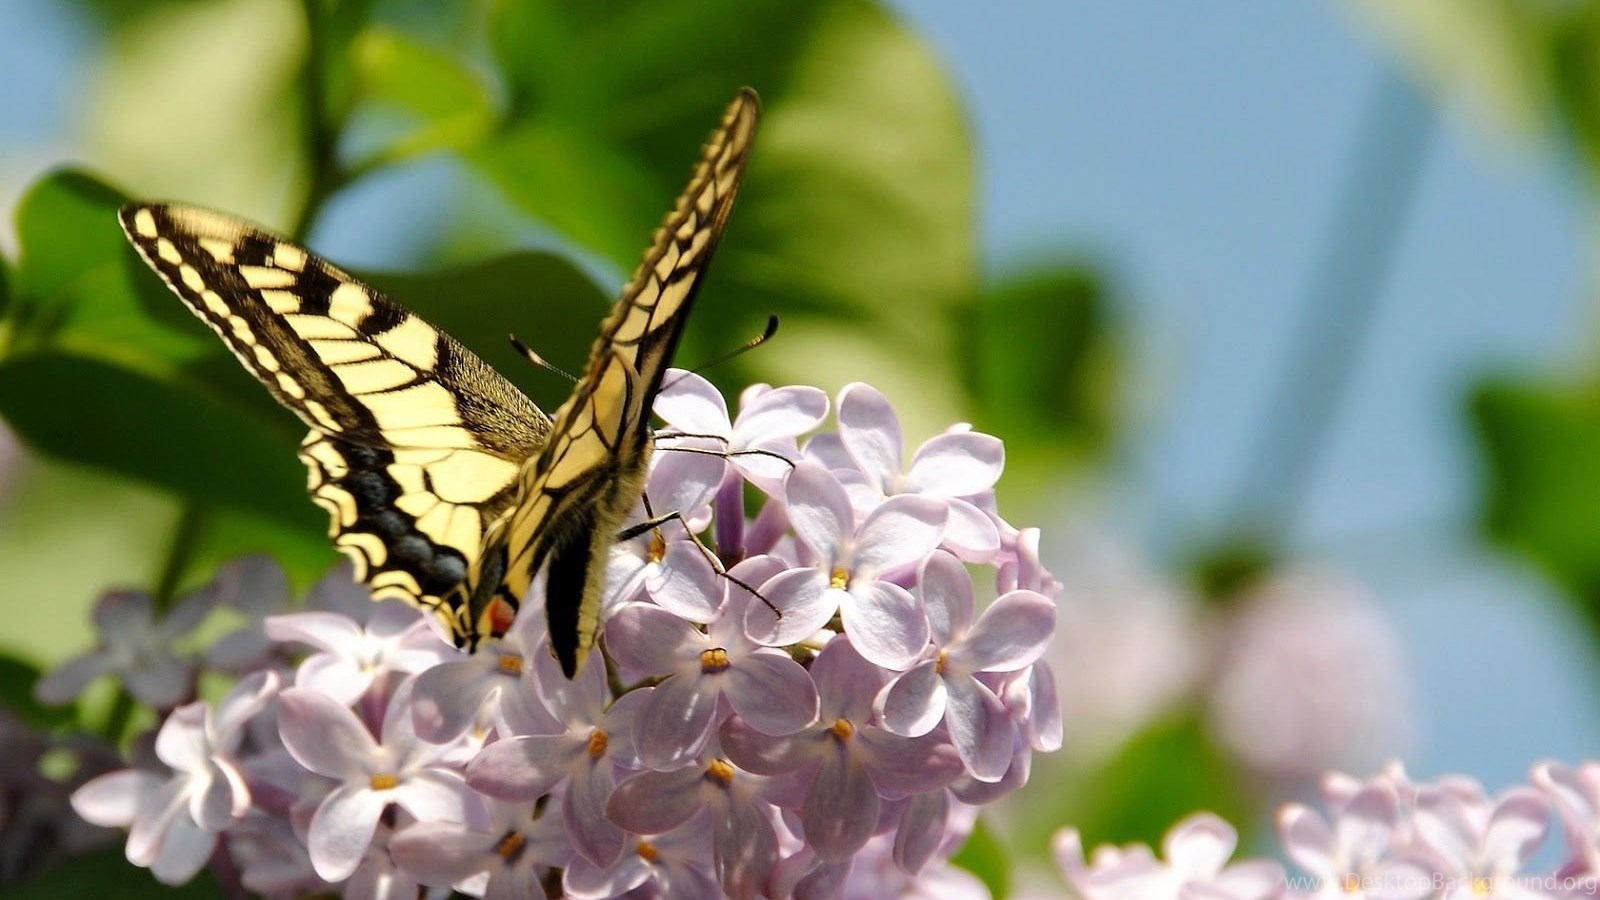 Spring butterfly wallpapers desktop 7779 hd wallpapers - Wallpapers sites list ...